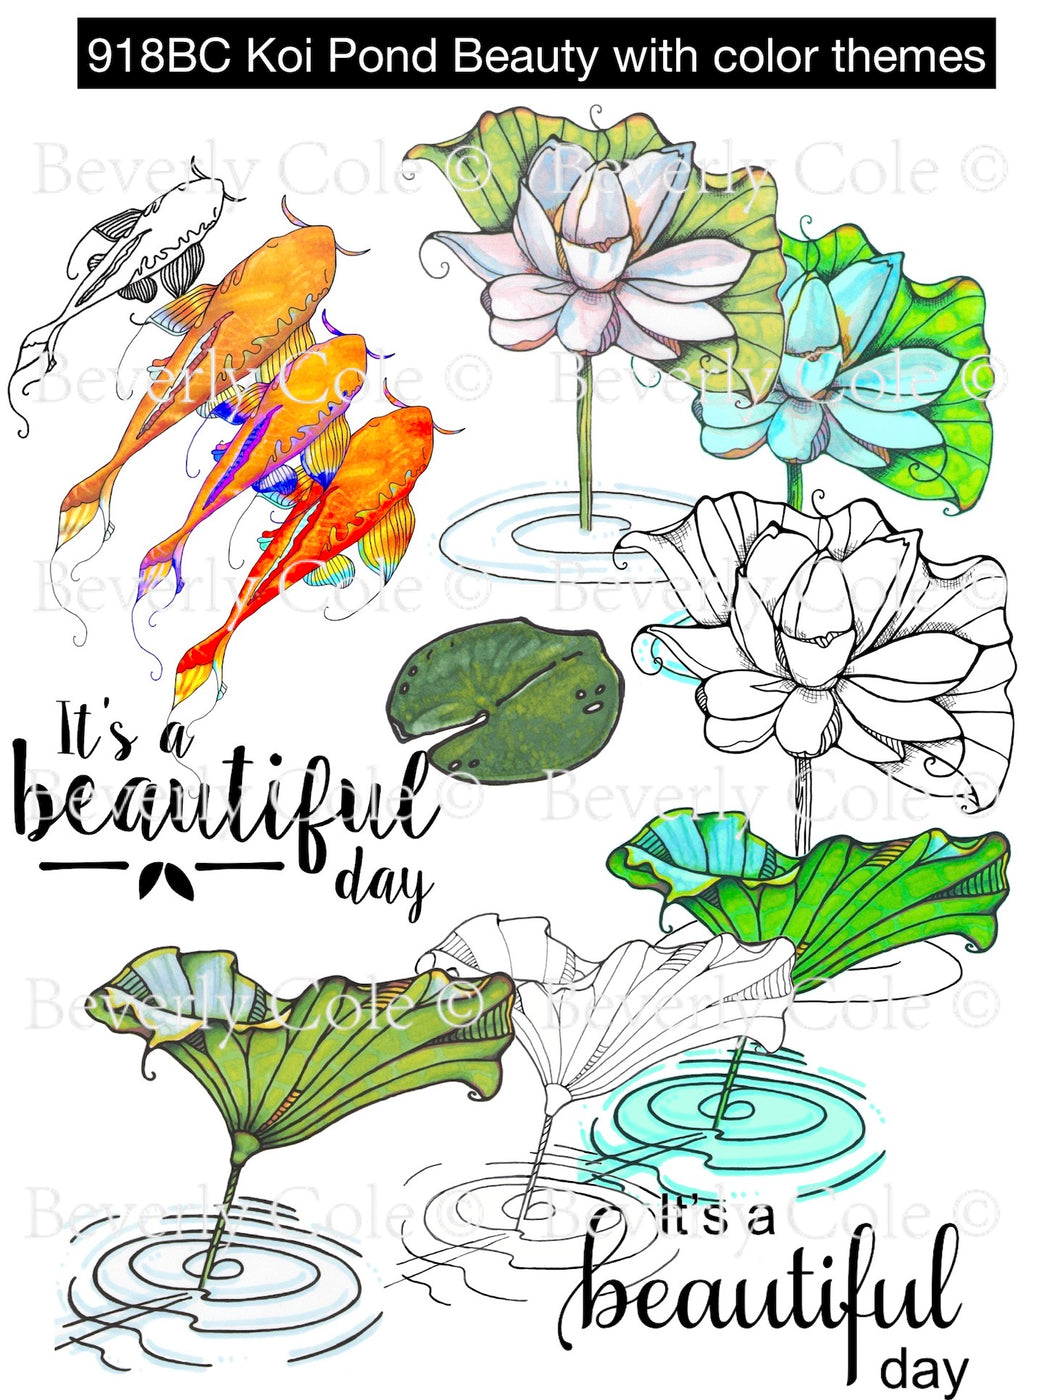 Koi Pond Beauty Digital Stamp Set, Digi918BC